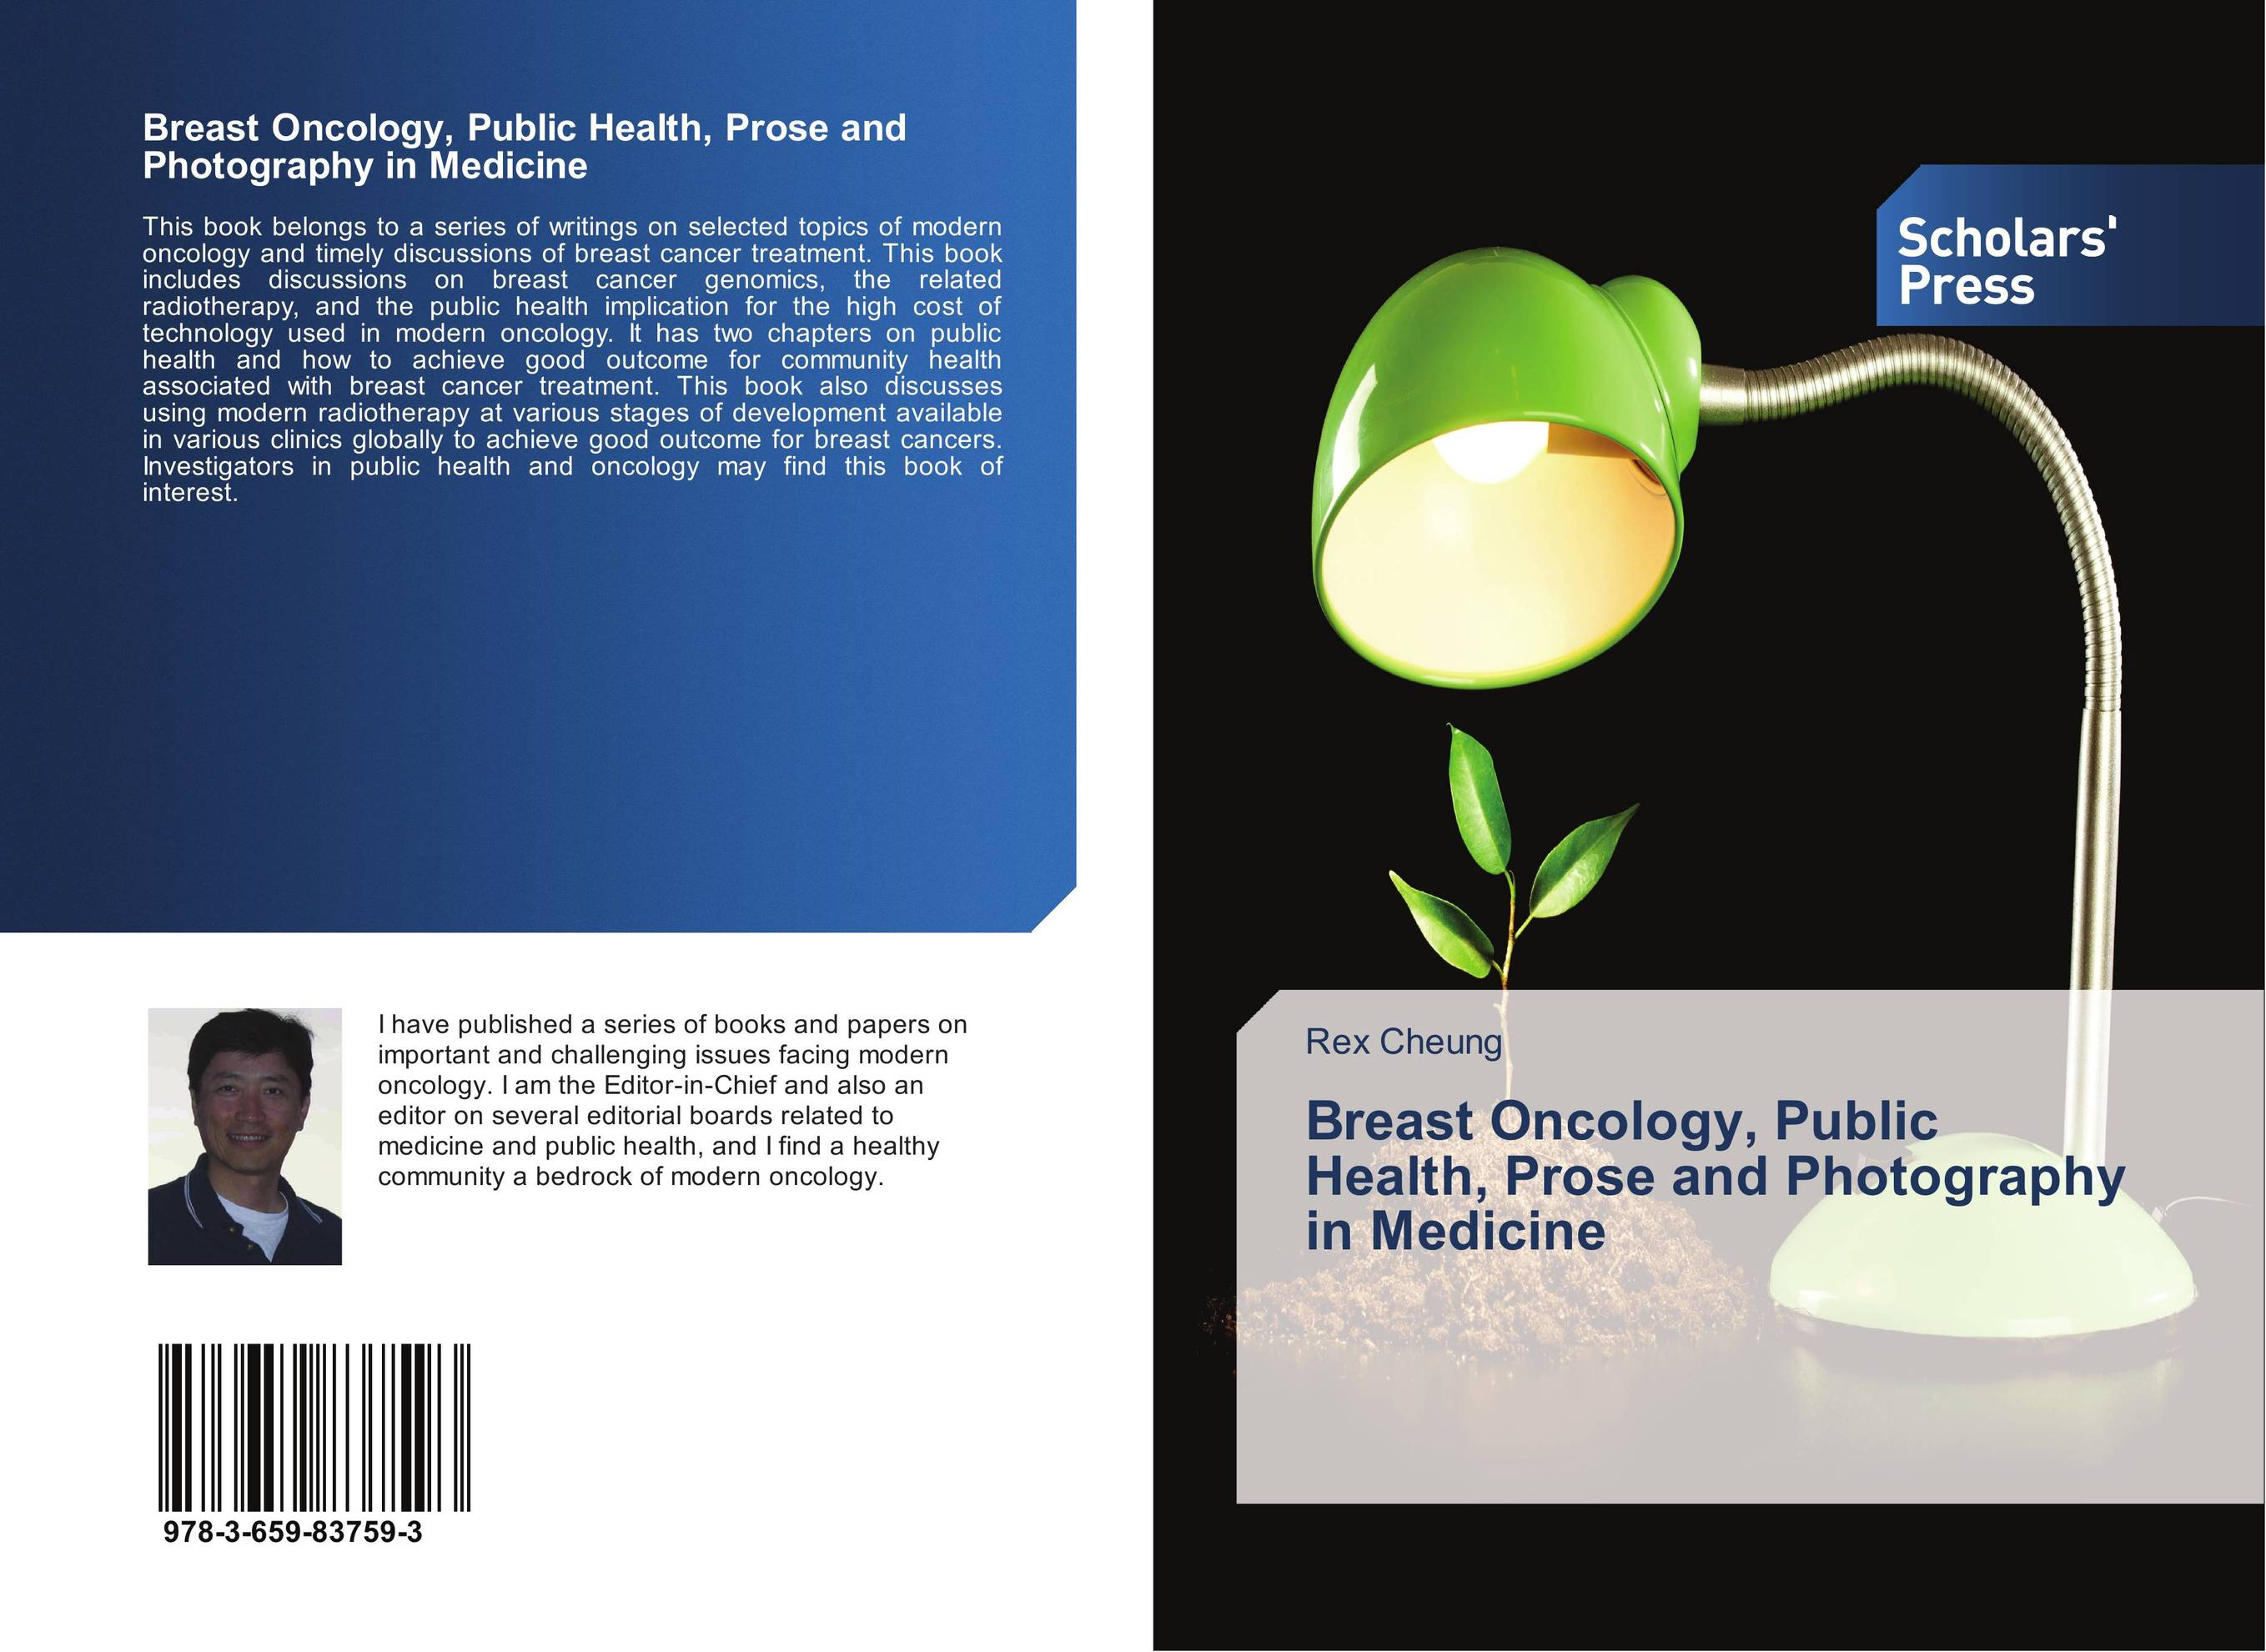 Breast Oncology, Public Health, Prose and Photography in Medicine how to perform a breast self exam using self breast cancer test breast inspection device